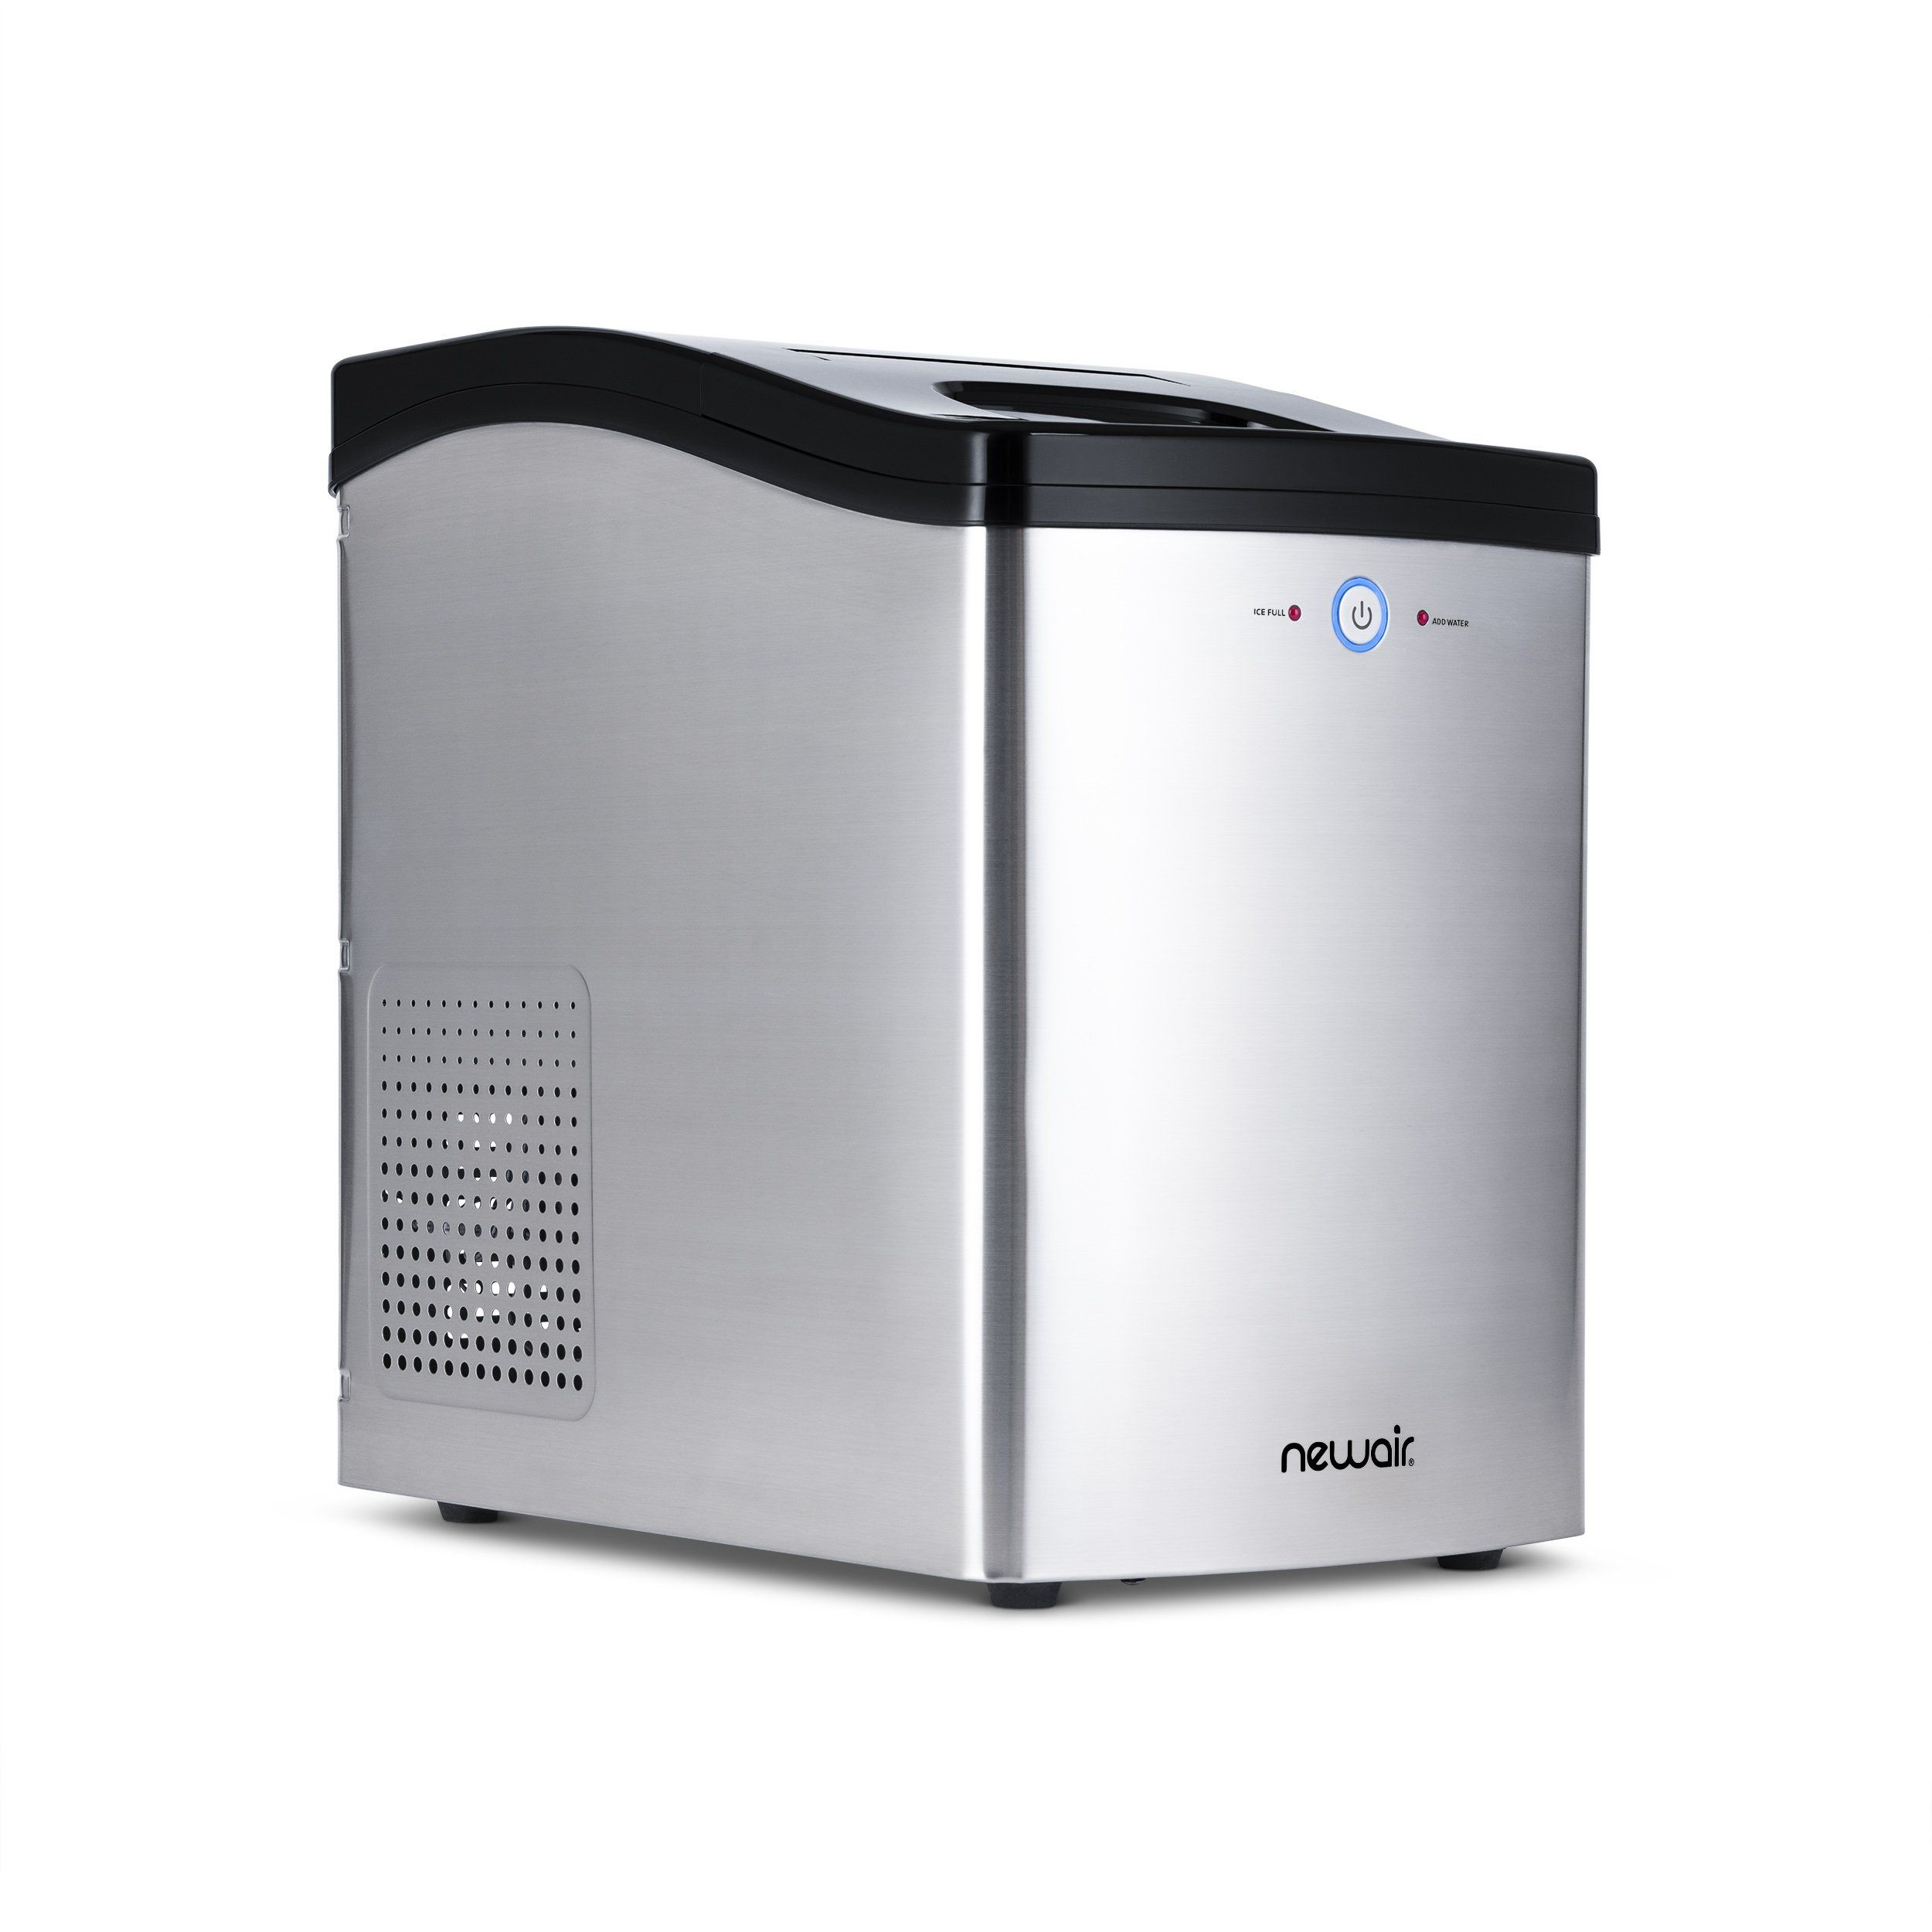 NewAir Countertop Nugget Ice Maker 40 lb. of Ice a Day in